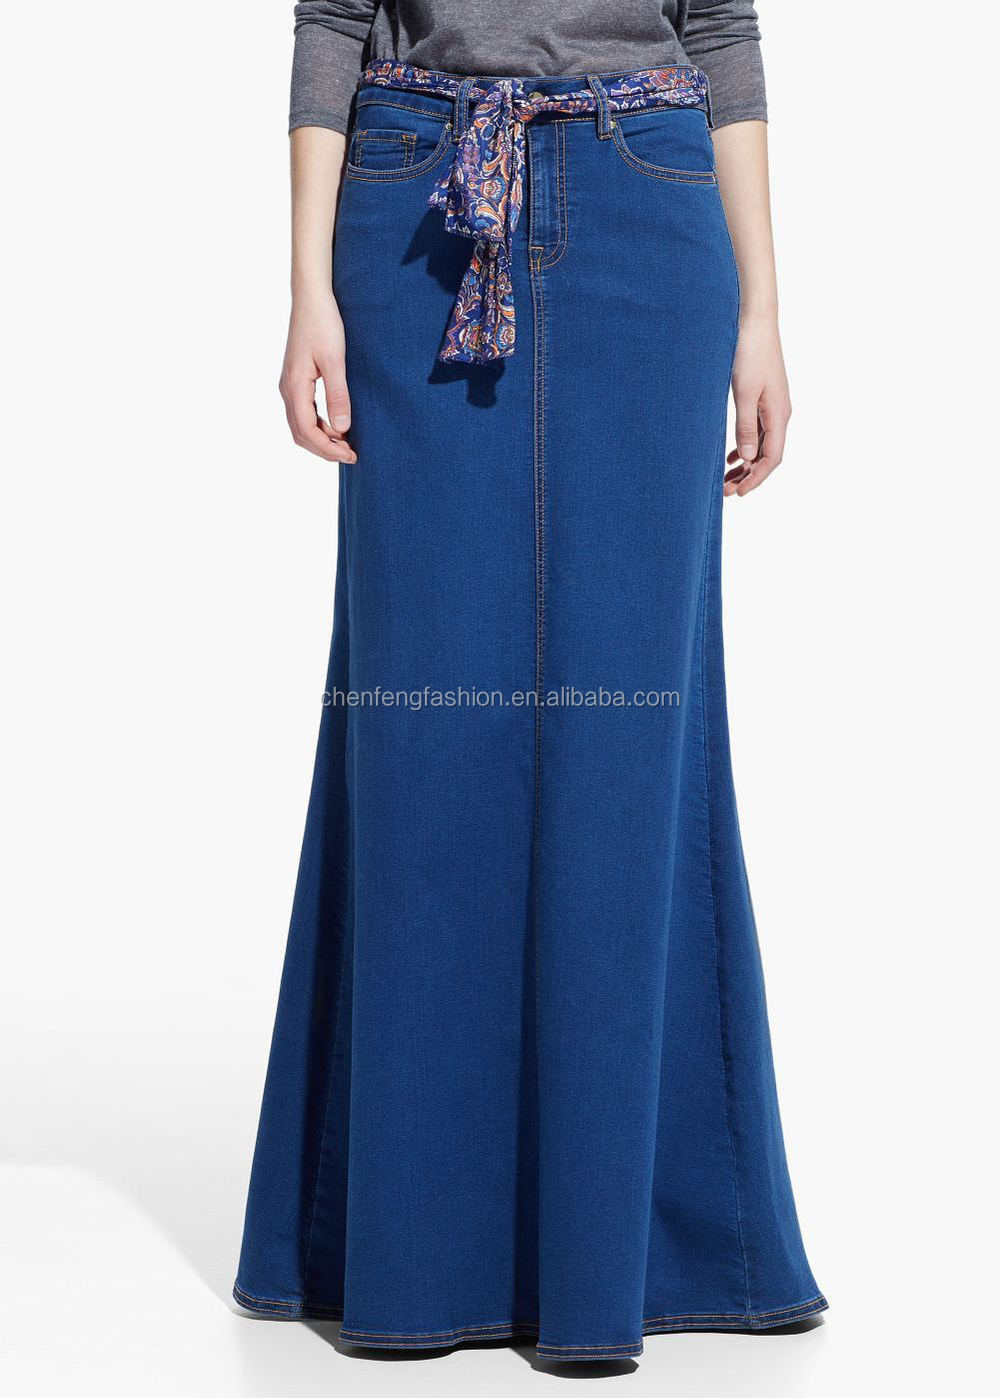 Women zip and button detail long skirt dark denim skirts 2016